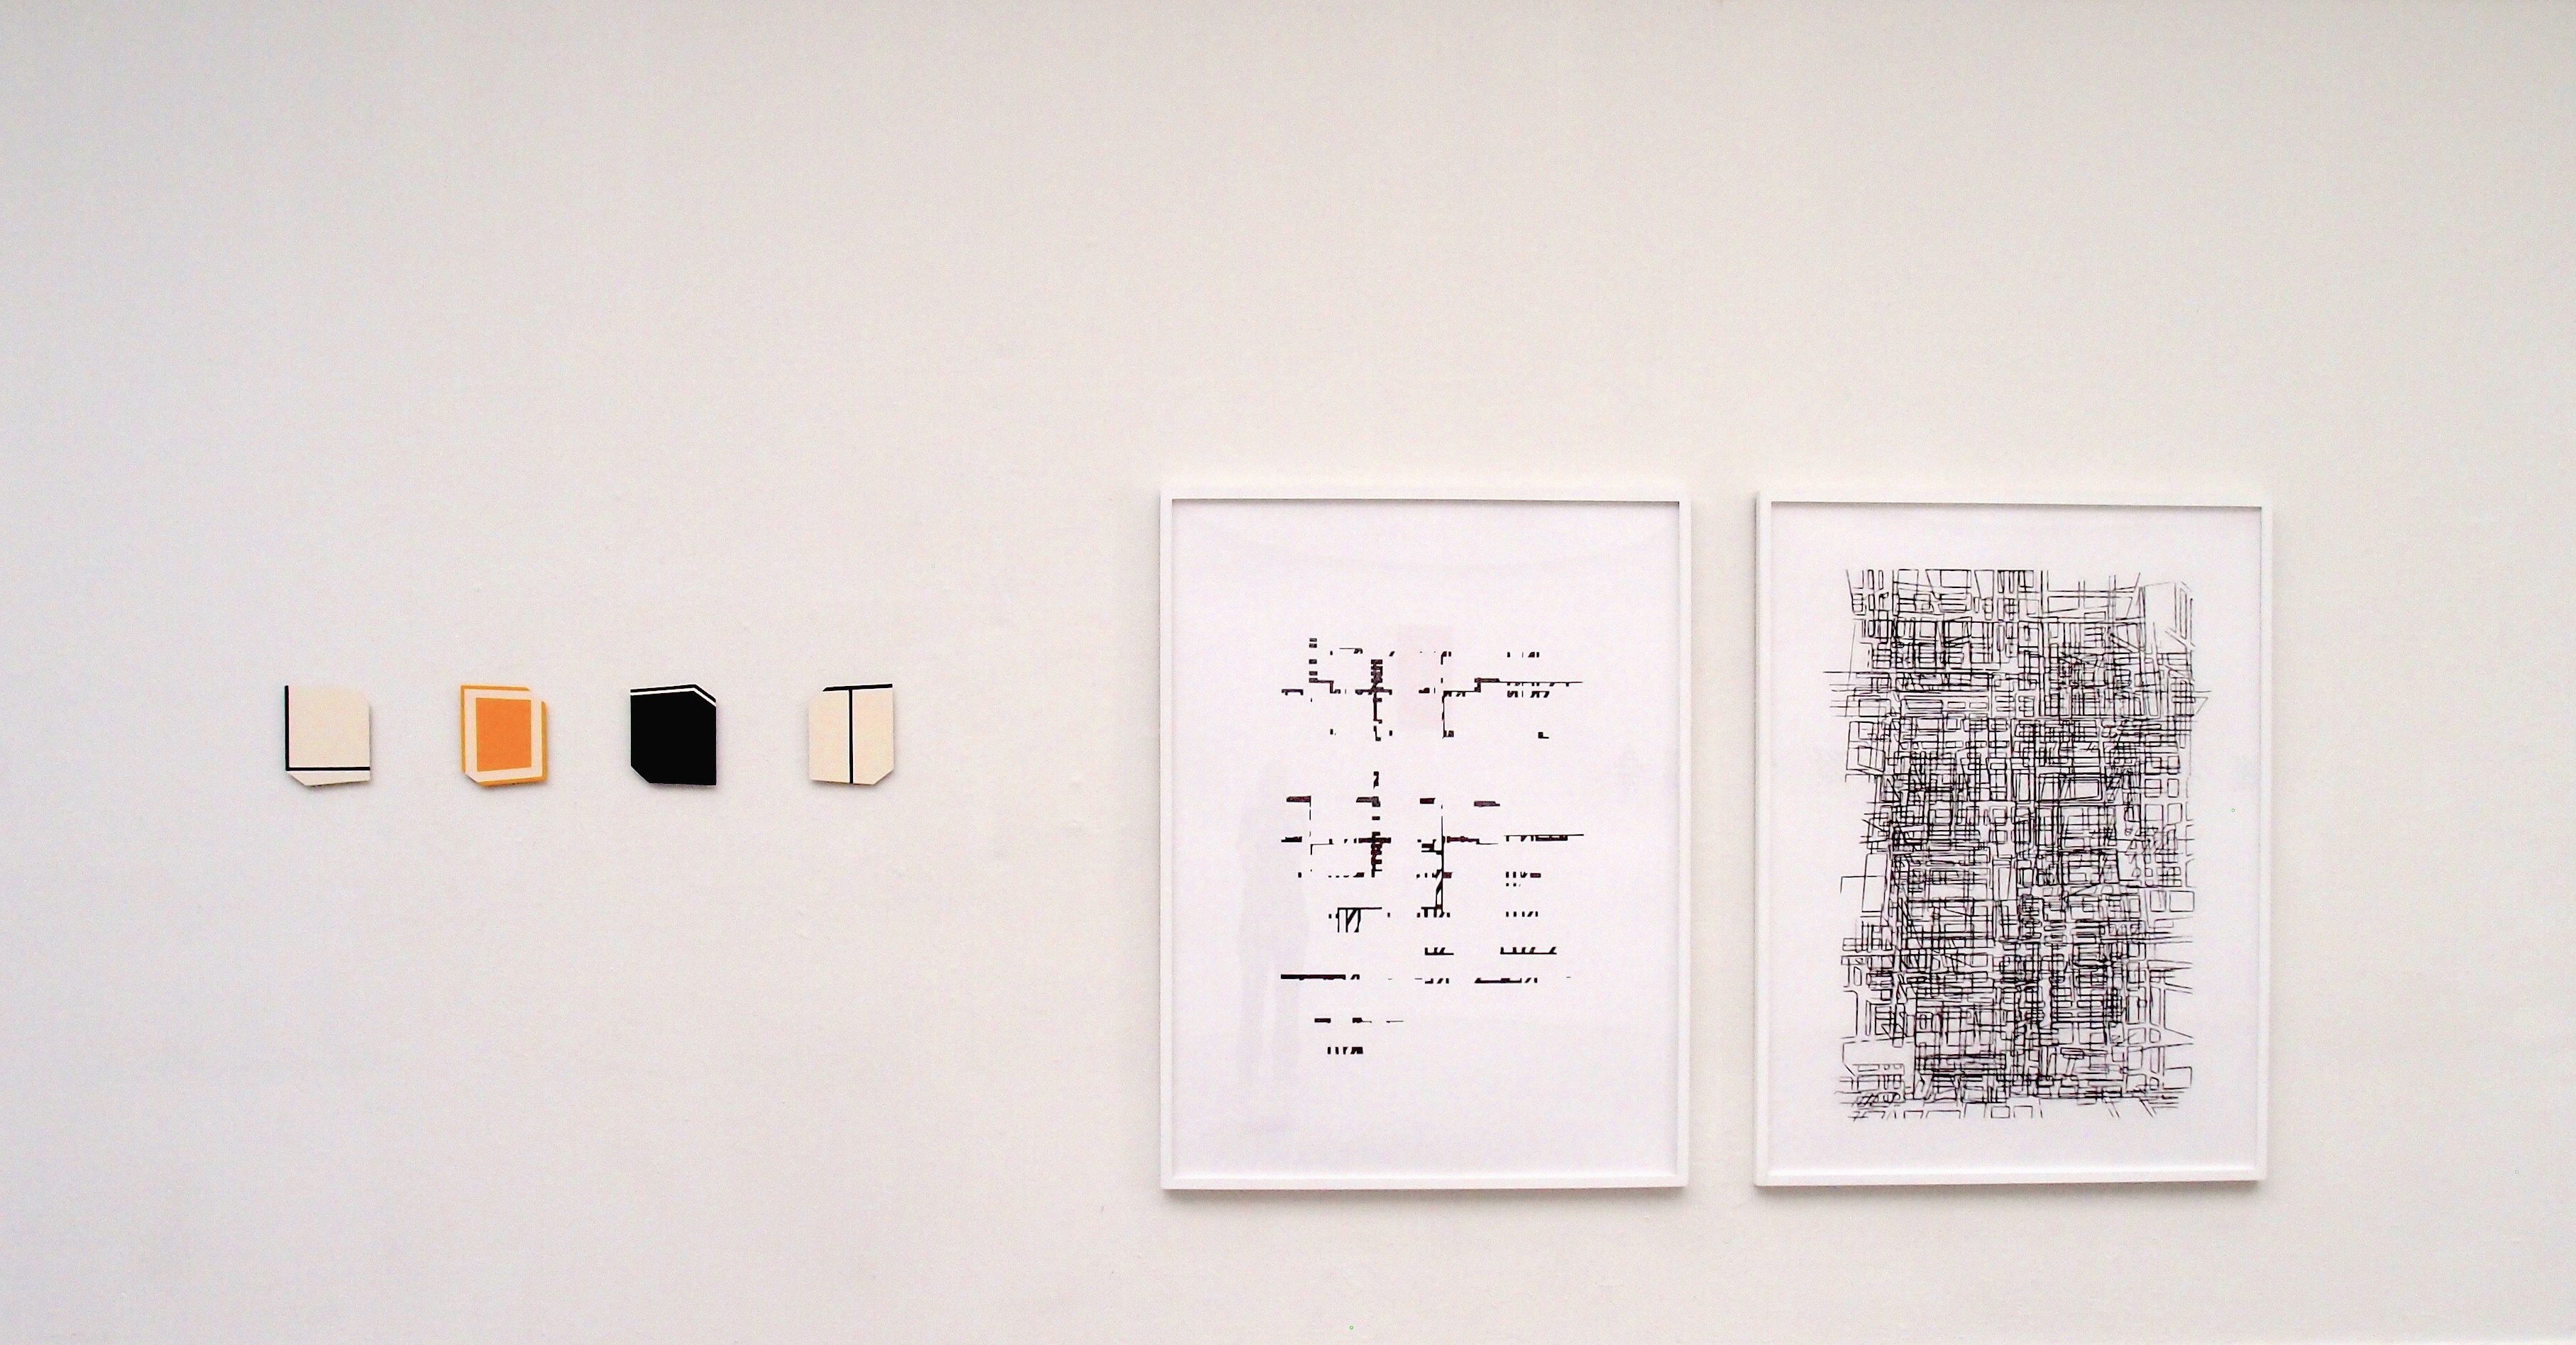 Gerda Kruimer, 4 Punatics & 2 big Drawings on show in Contemporary Contemplations in Arti et Amicitiae in Amsterdam